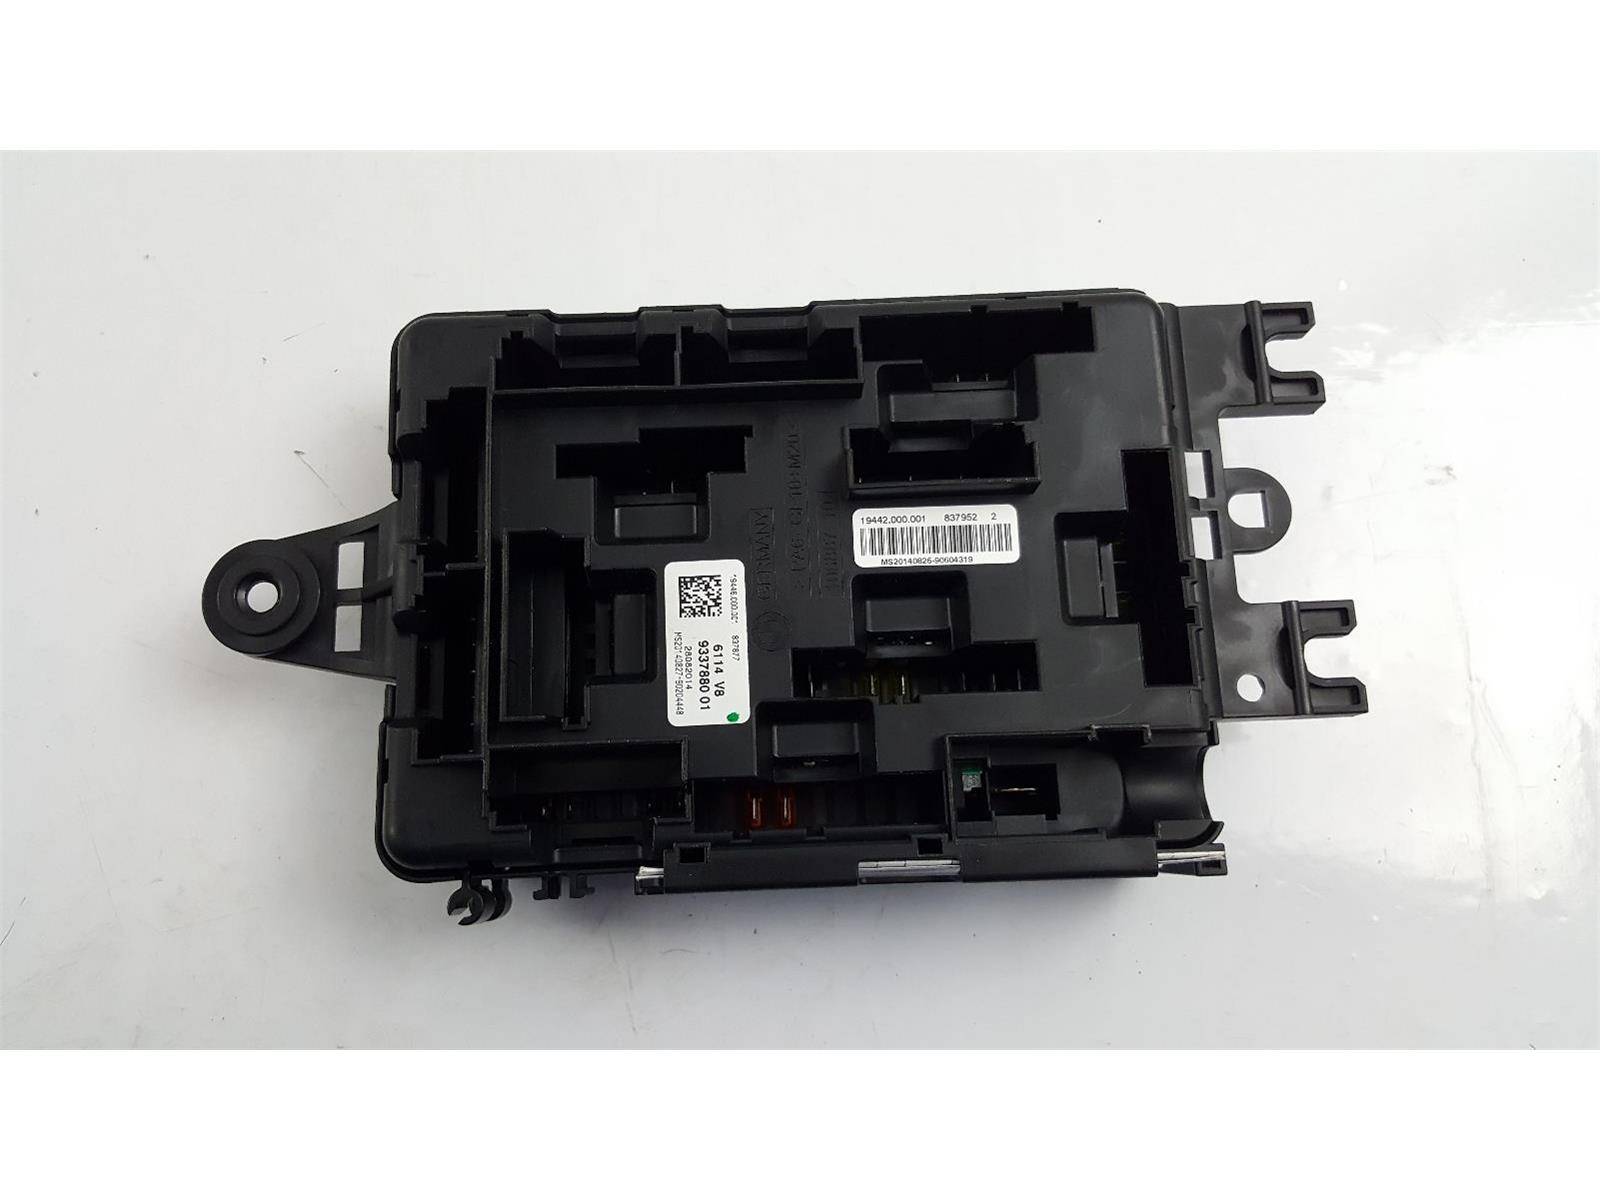 Bmw 3 Series Fuse Box 2014 Electrical Wiring Diagrams M6 2012 To 2015 Diesel Manual For Sale From F350